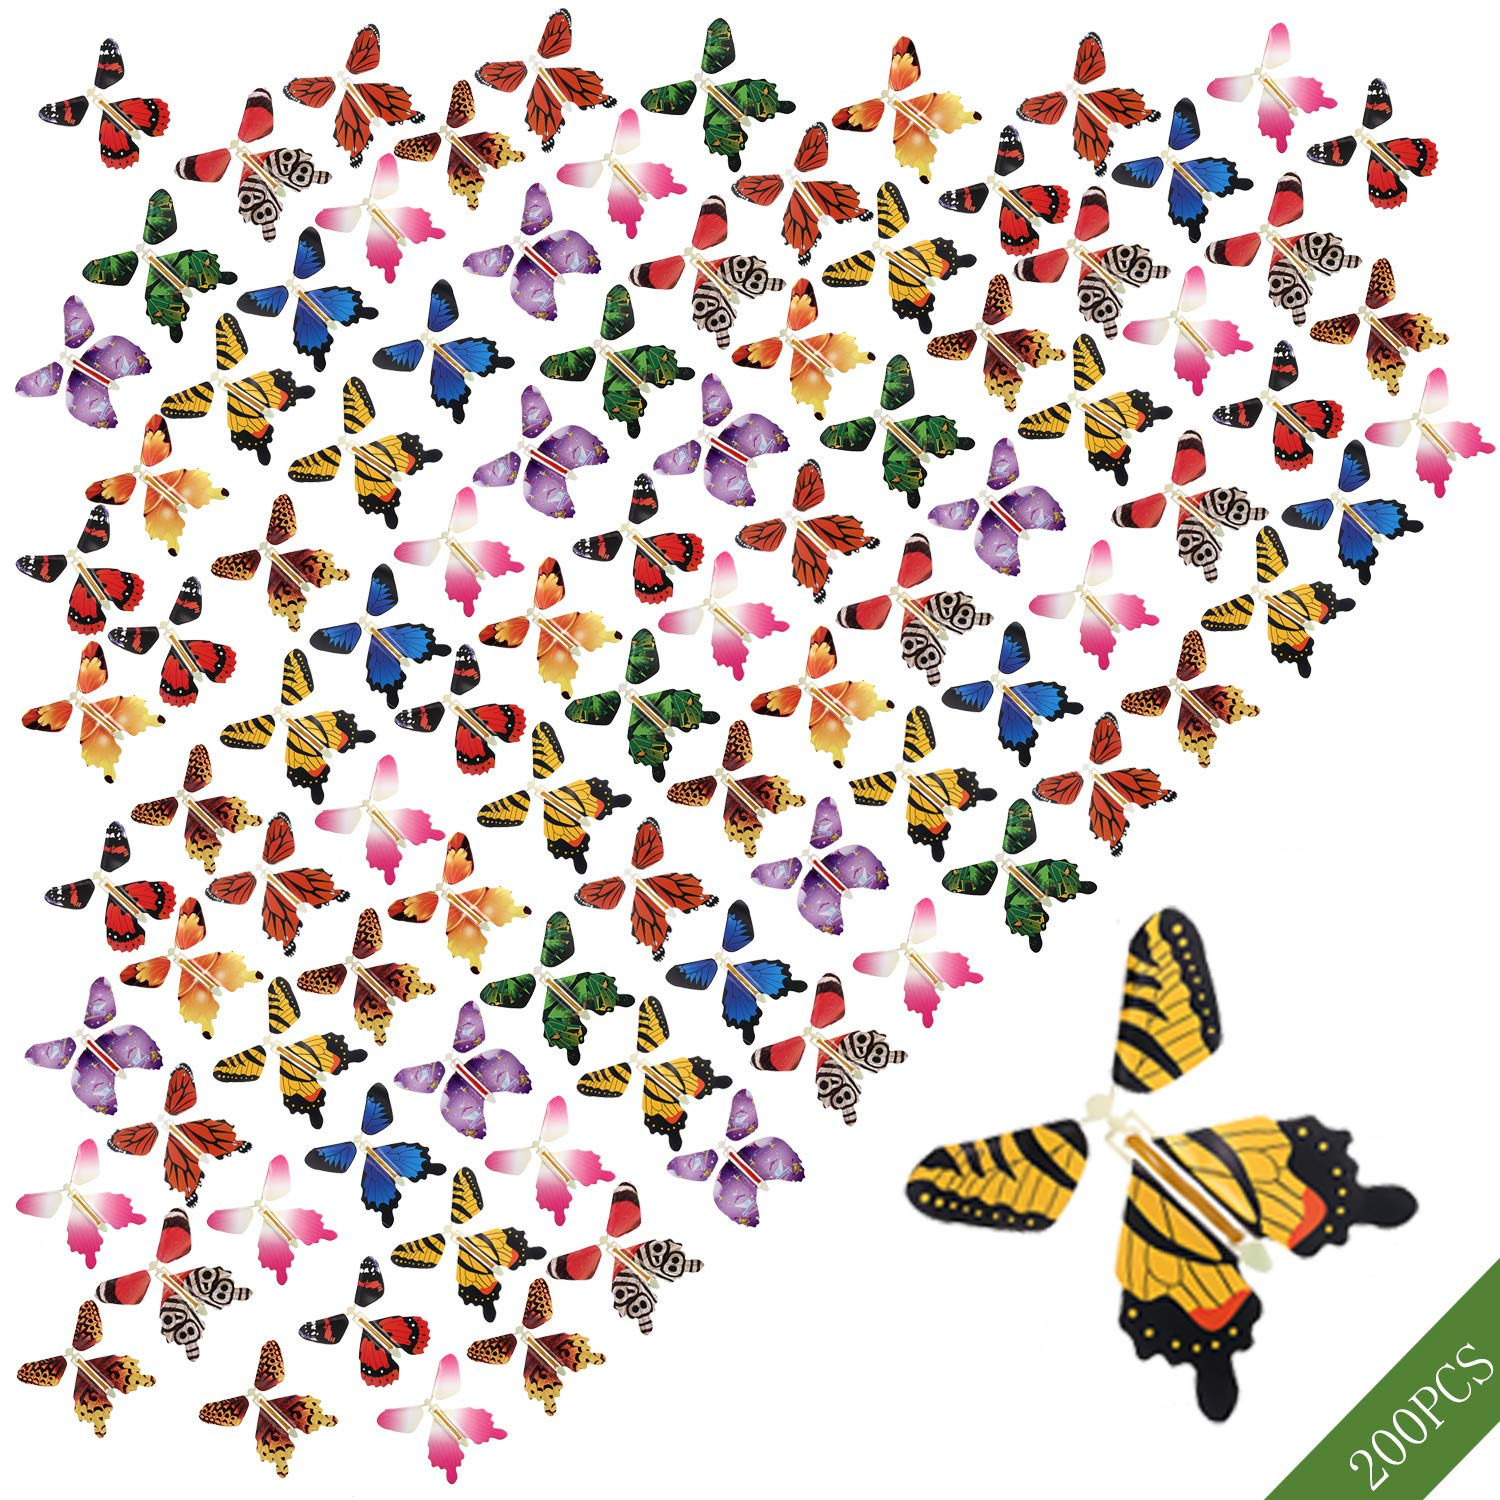 beemean Magic Flying Butterfly Gift Cards - Wind Up Butterfly in The Book Fairy Toy Great Surprise Wedding (200PCS)